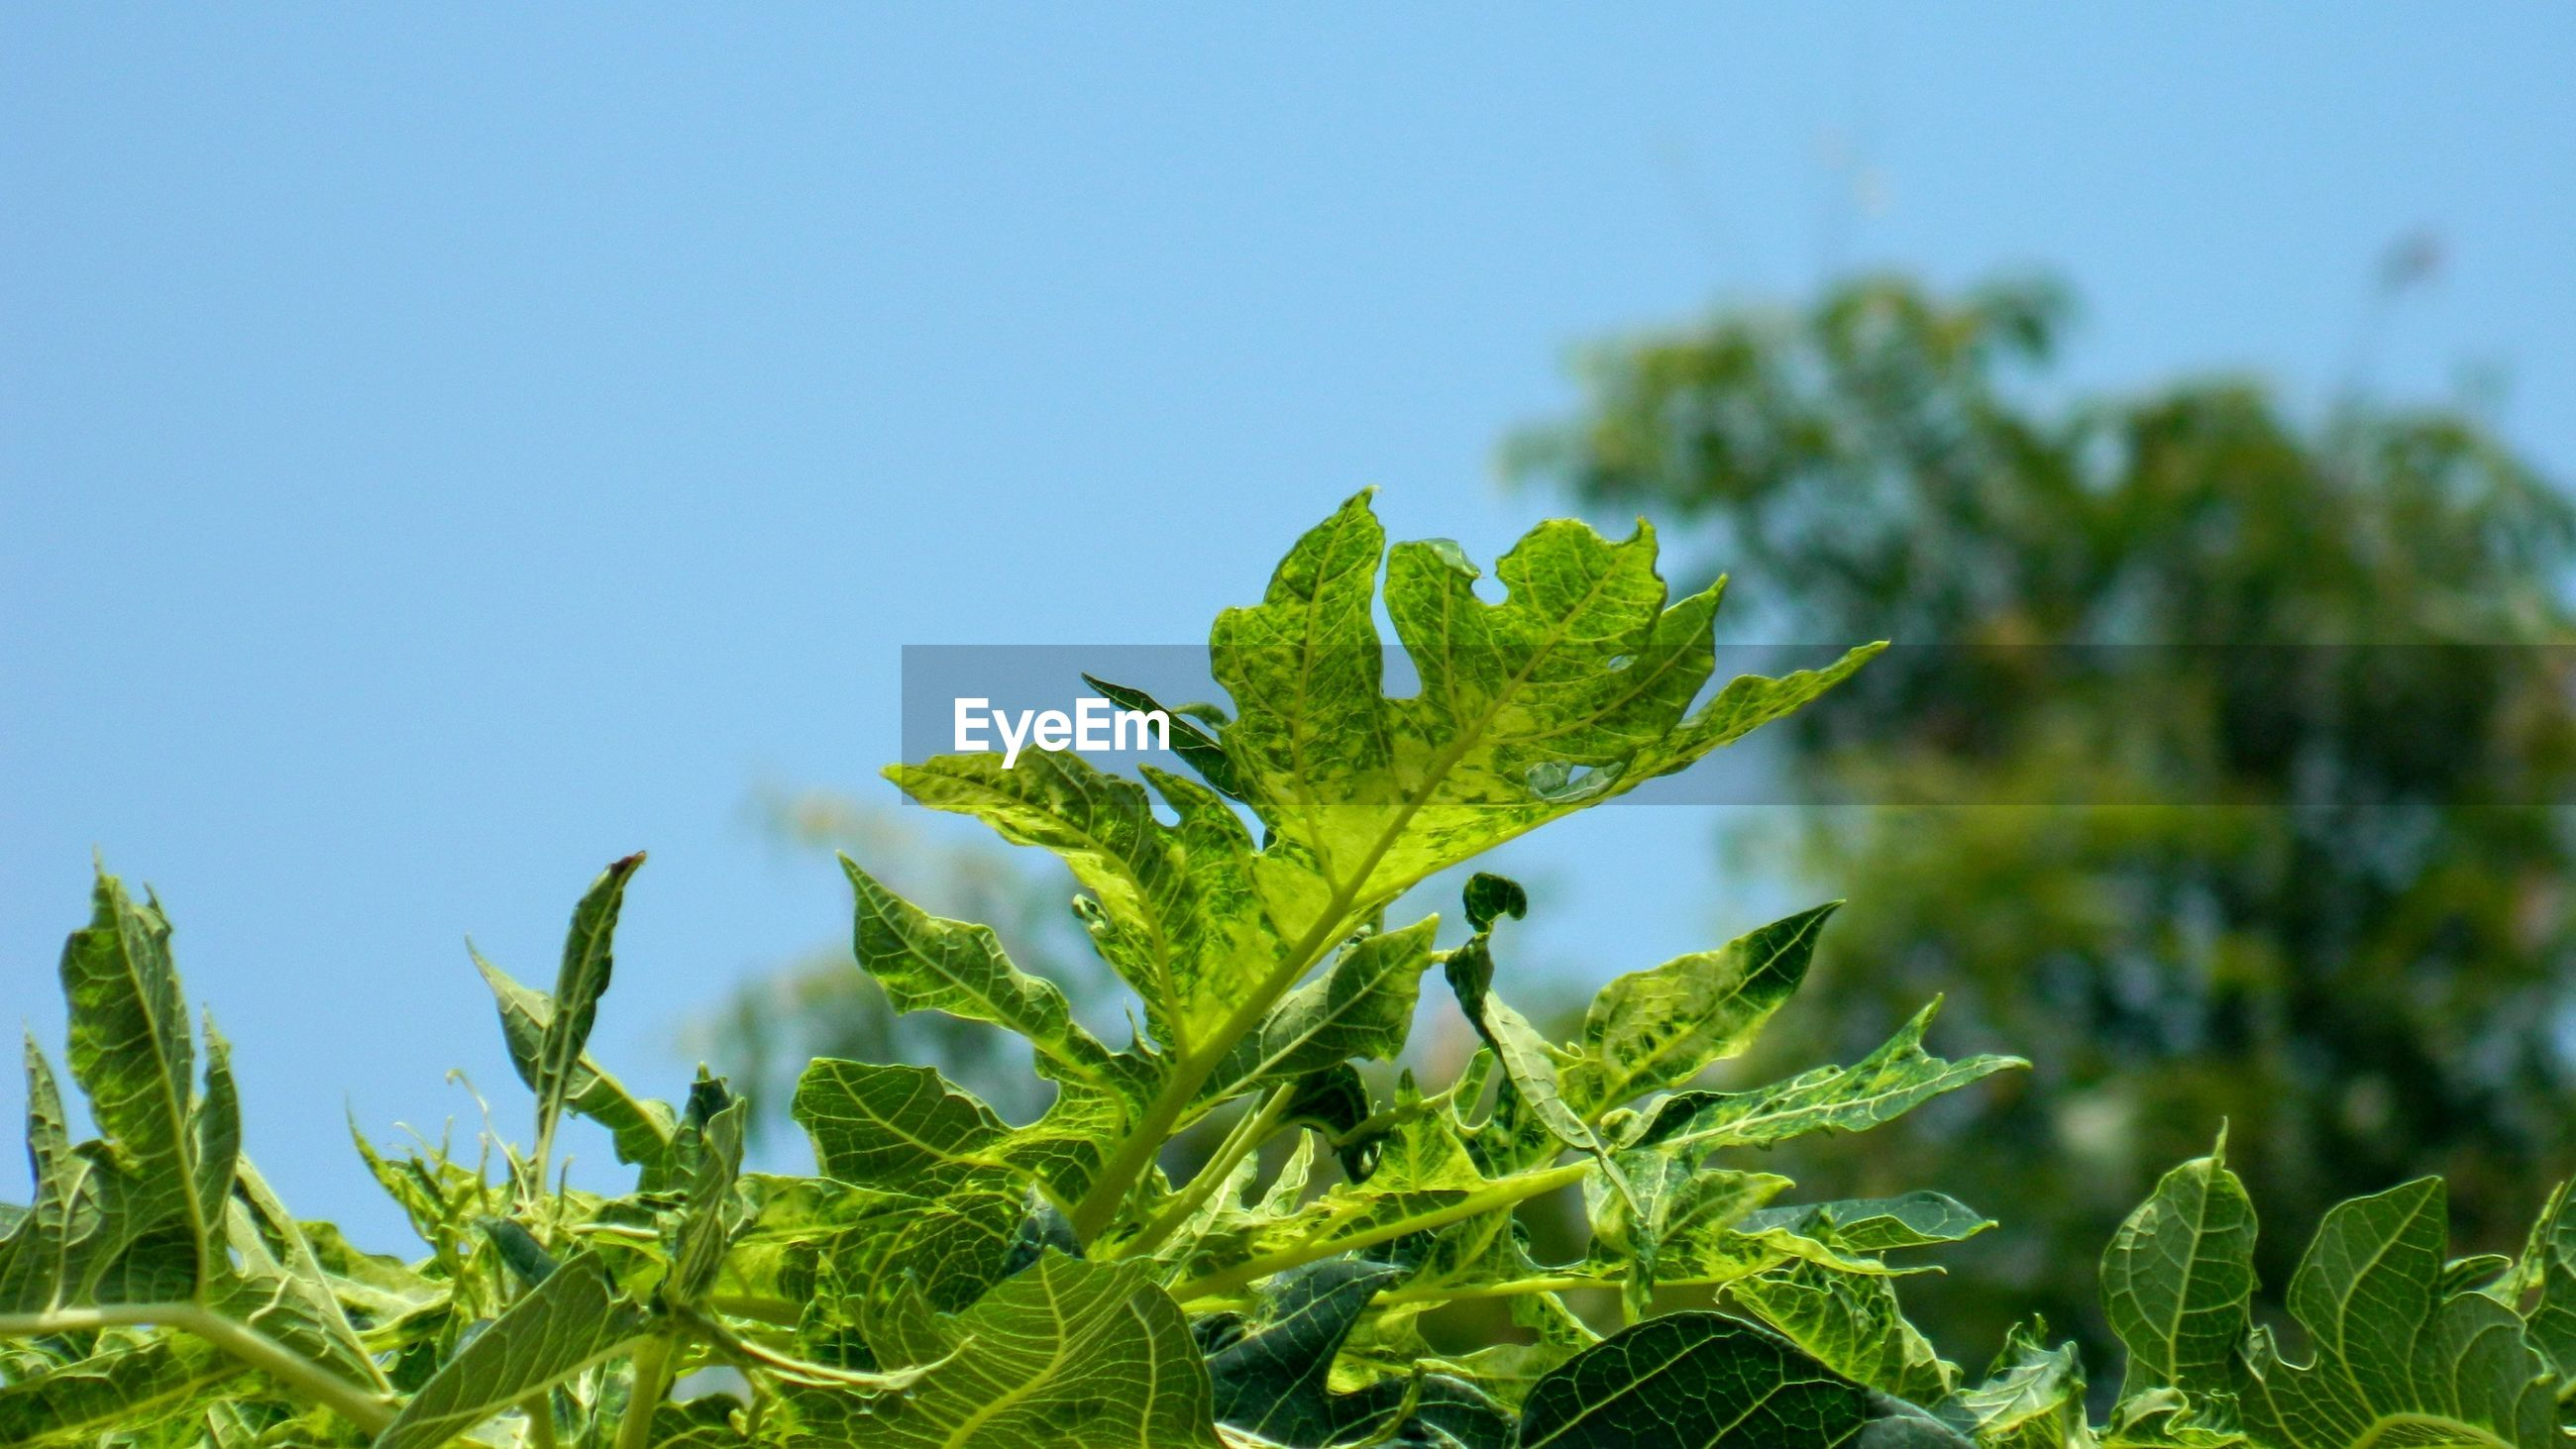 CLOSE-UP OF FRESH GREEN PLANTS AGAINST CLEAR SKY